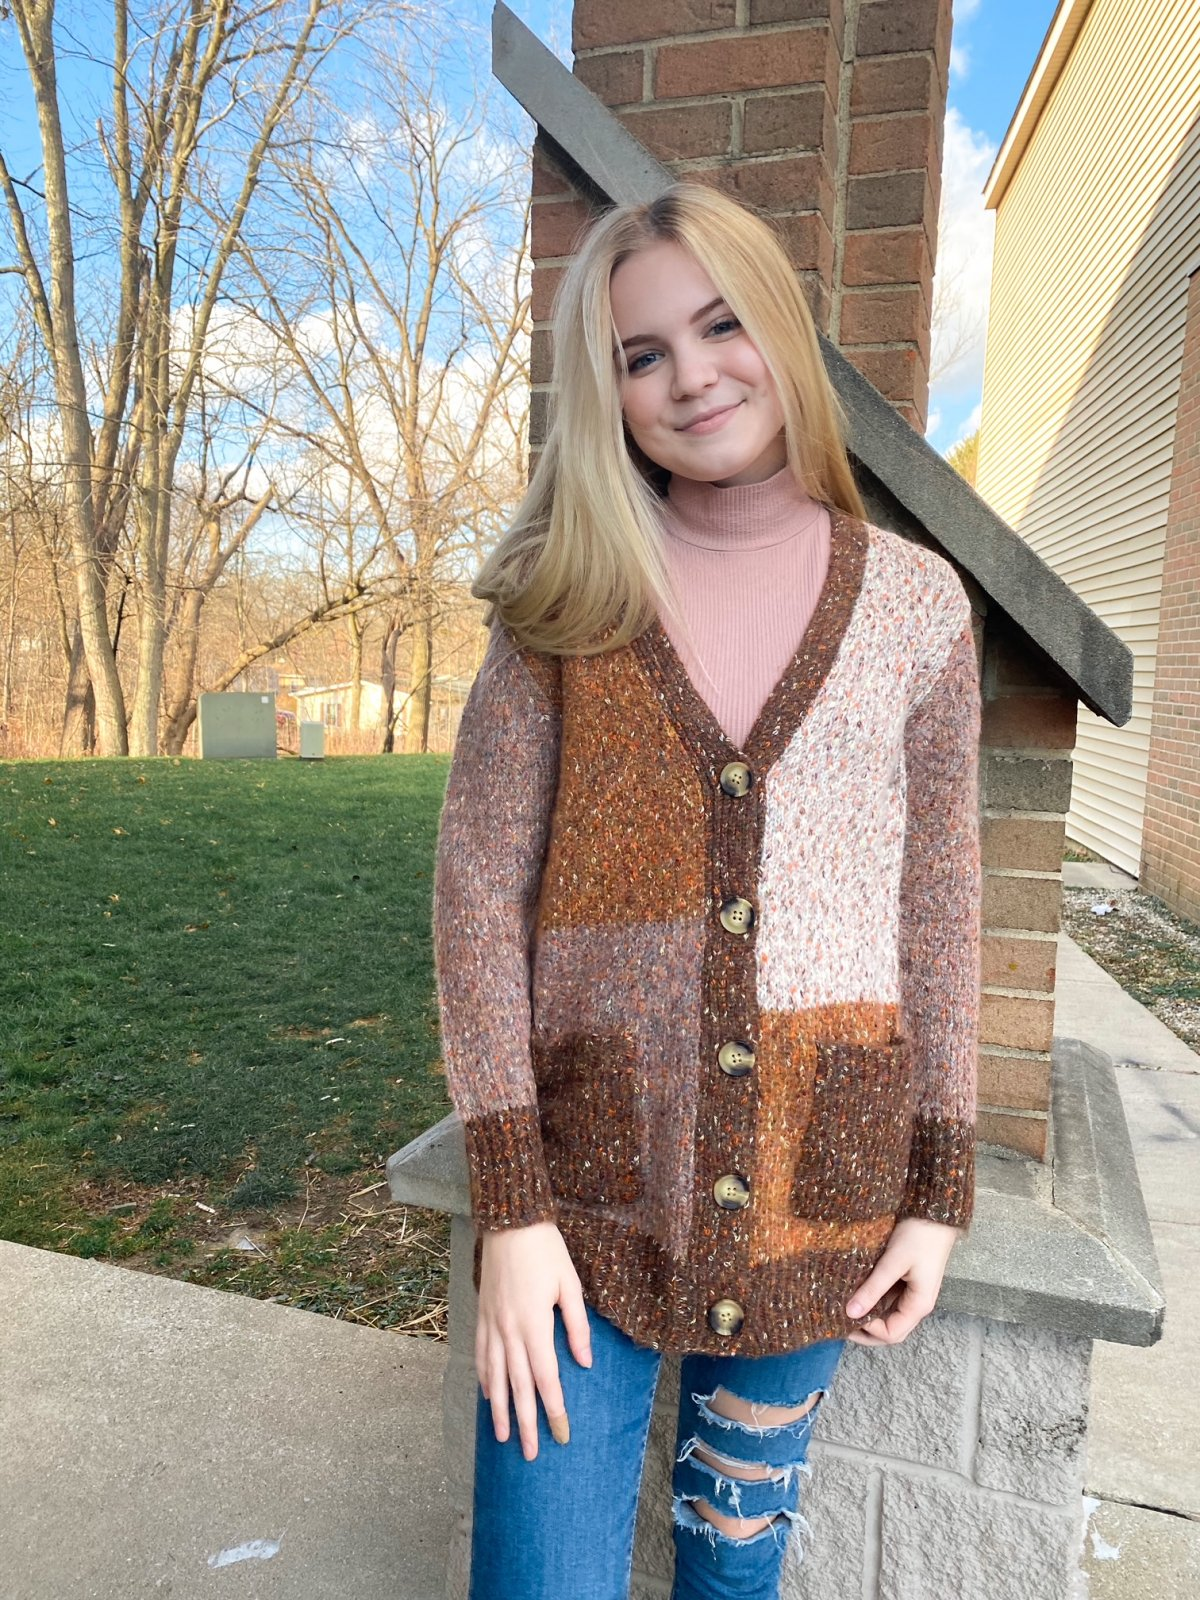 New Kids on the Color Block Cardi